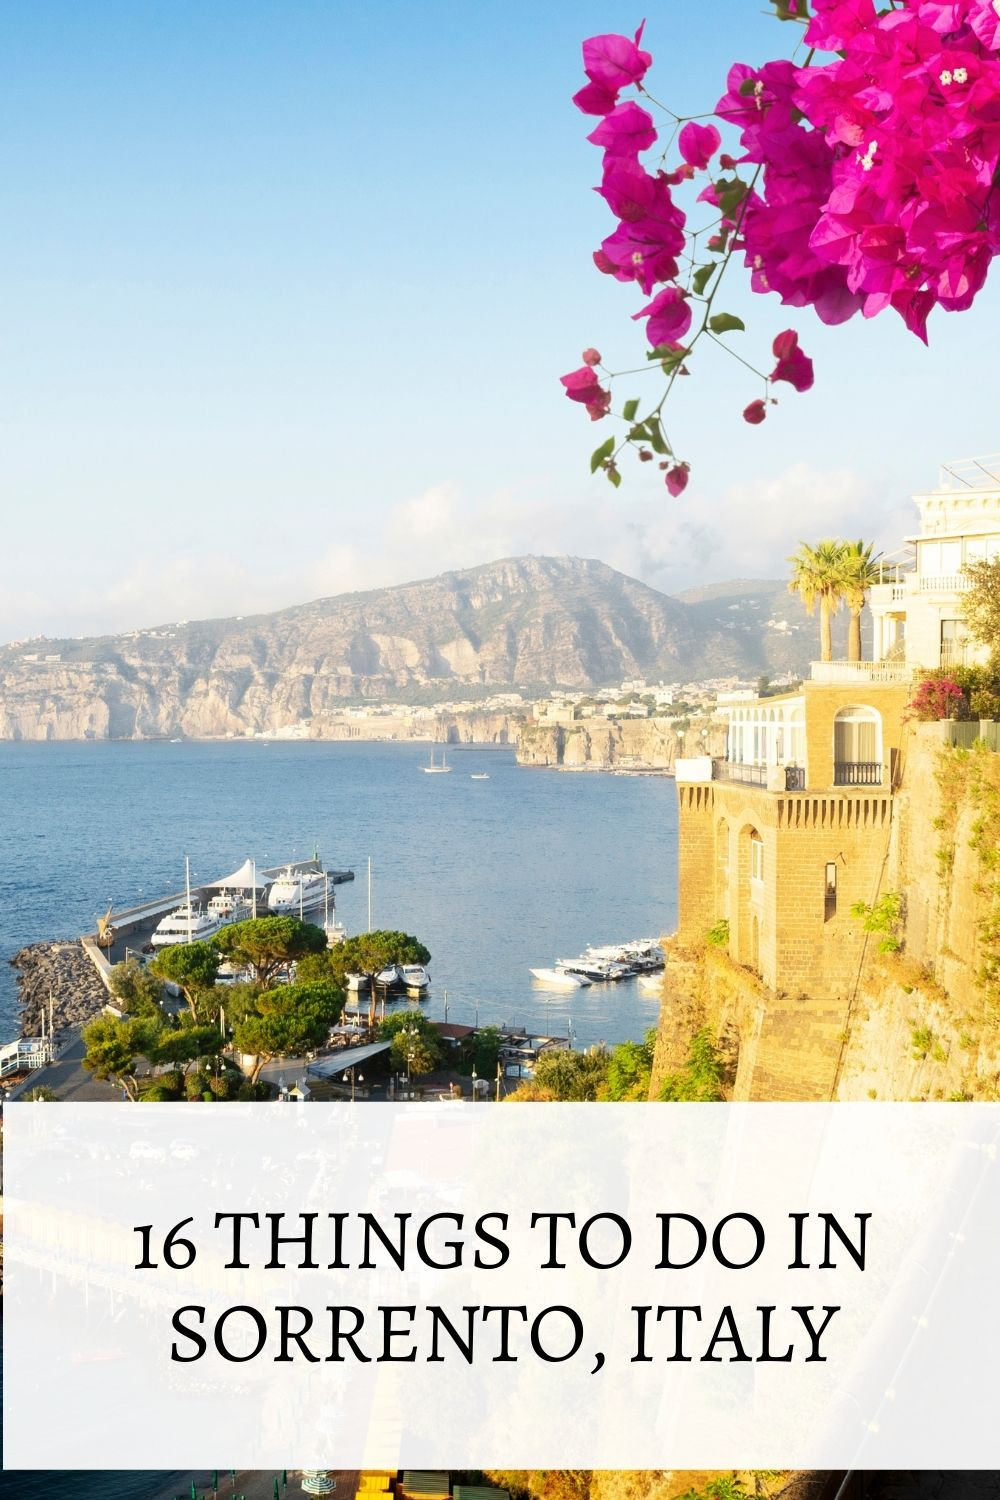 16 Things to do in Sorrento Italy blog post